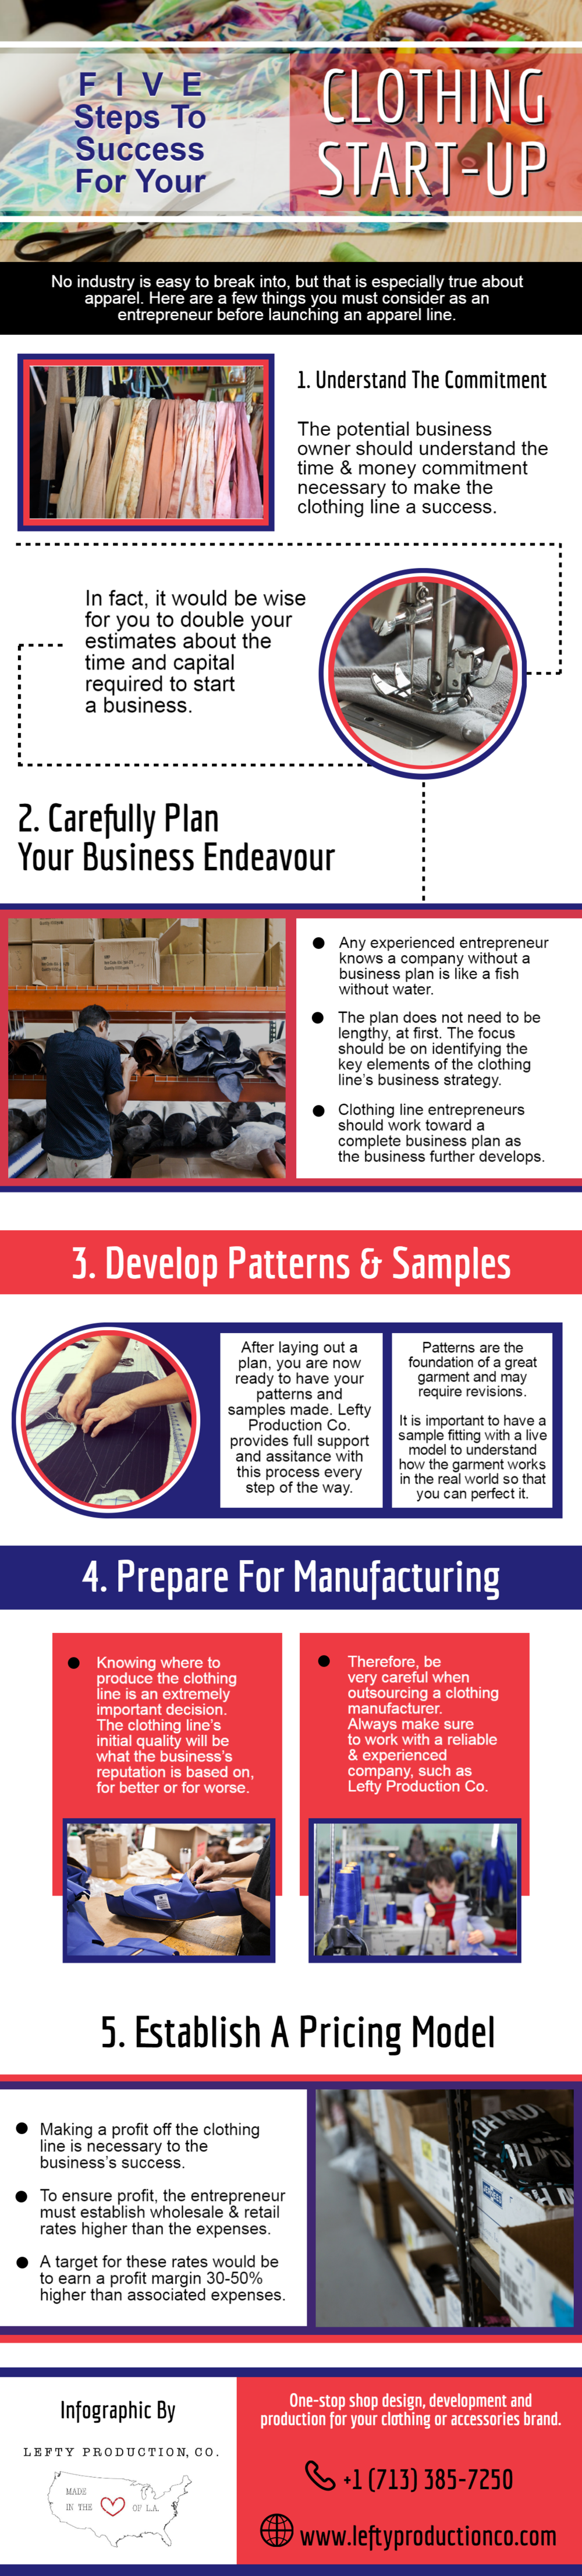 Five+Steps+To+Success+For+Your+Clothing+Start-up.png